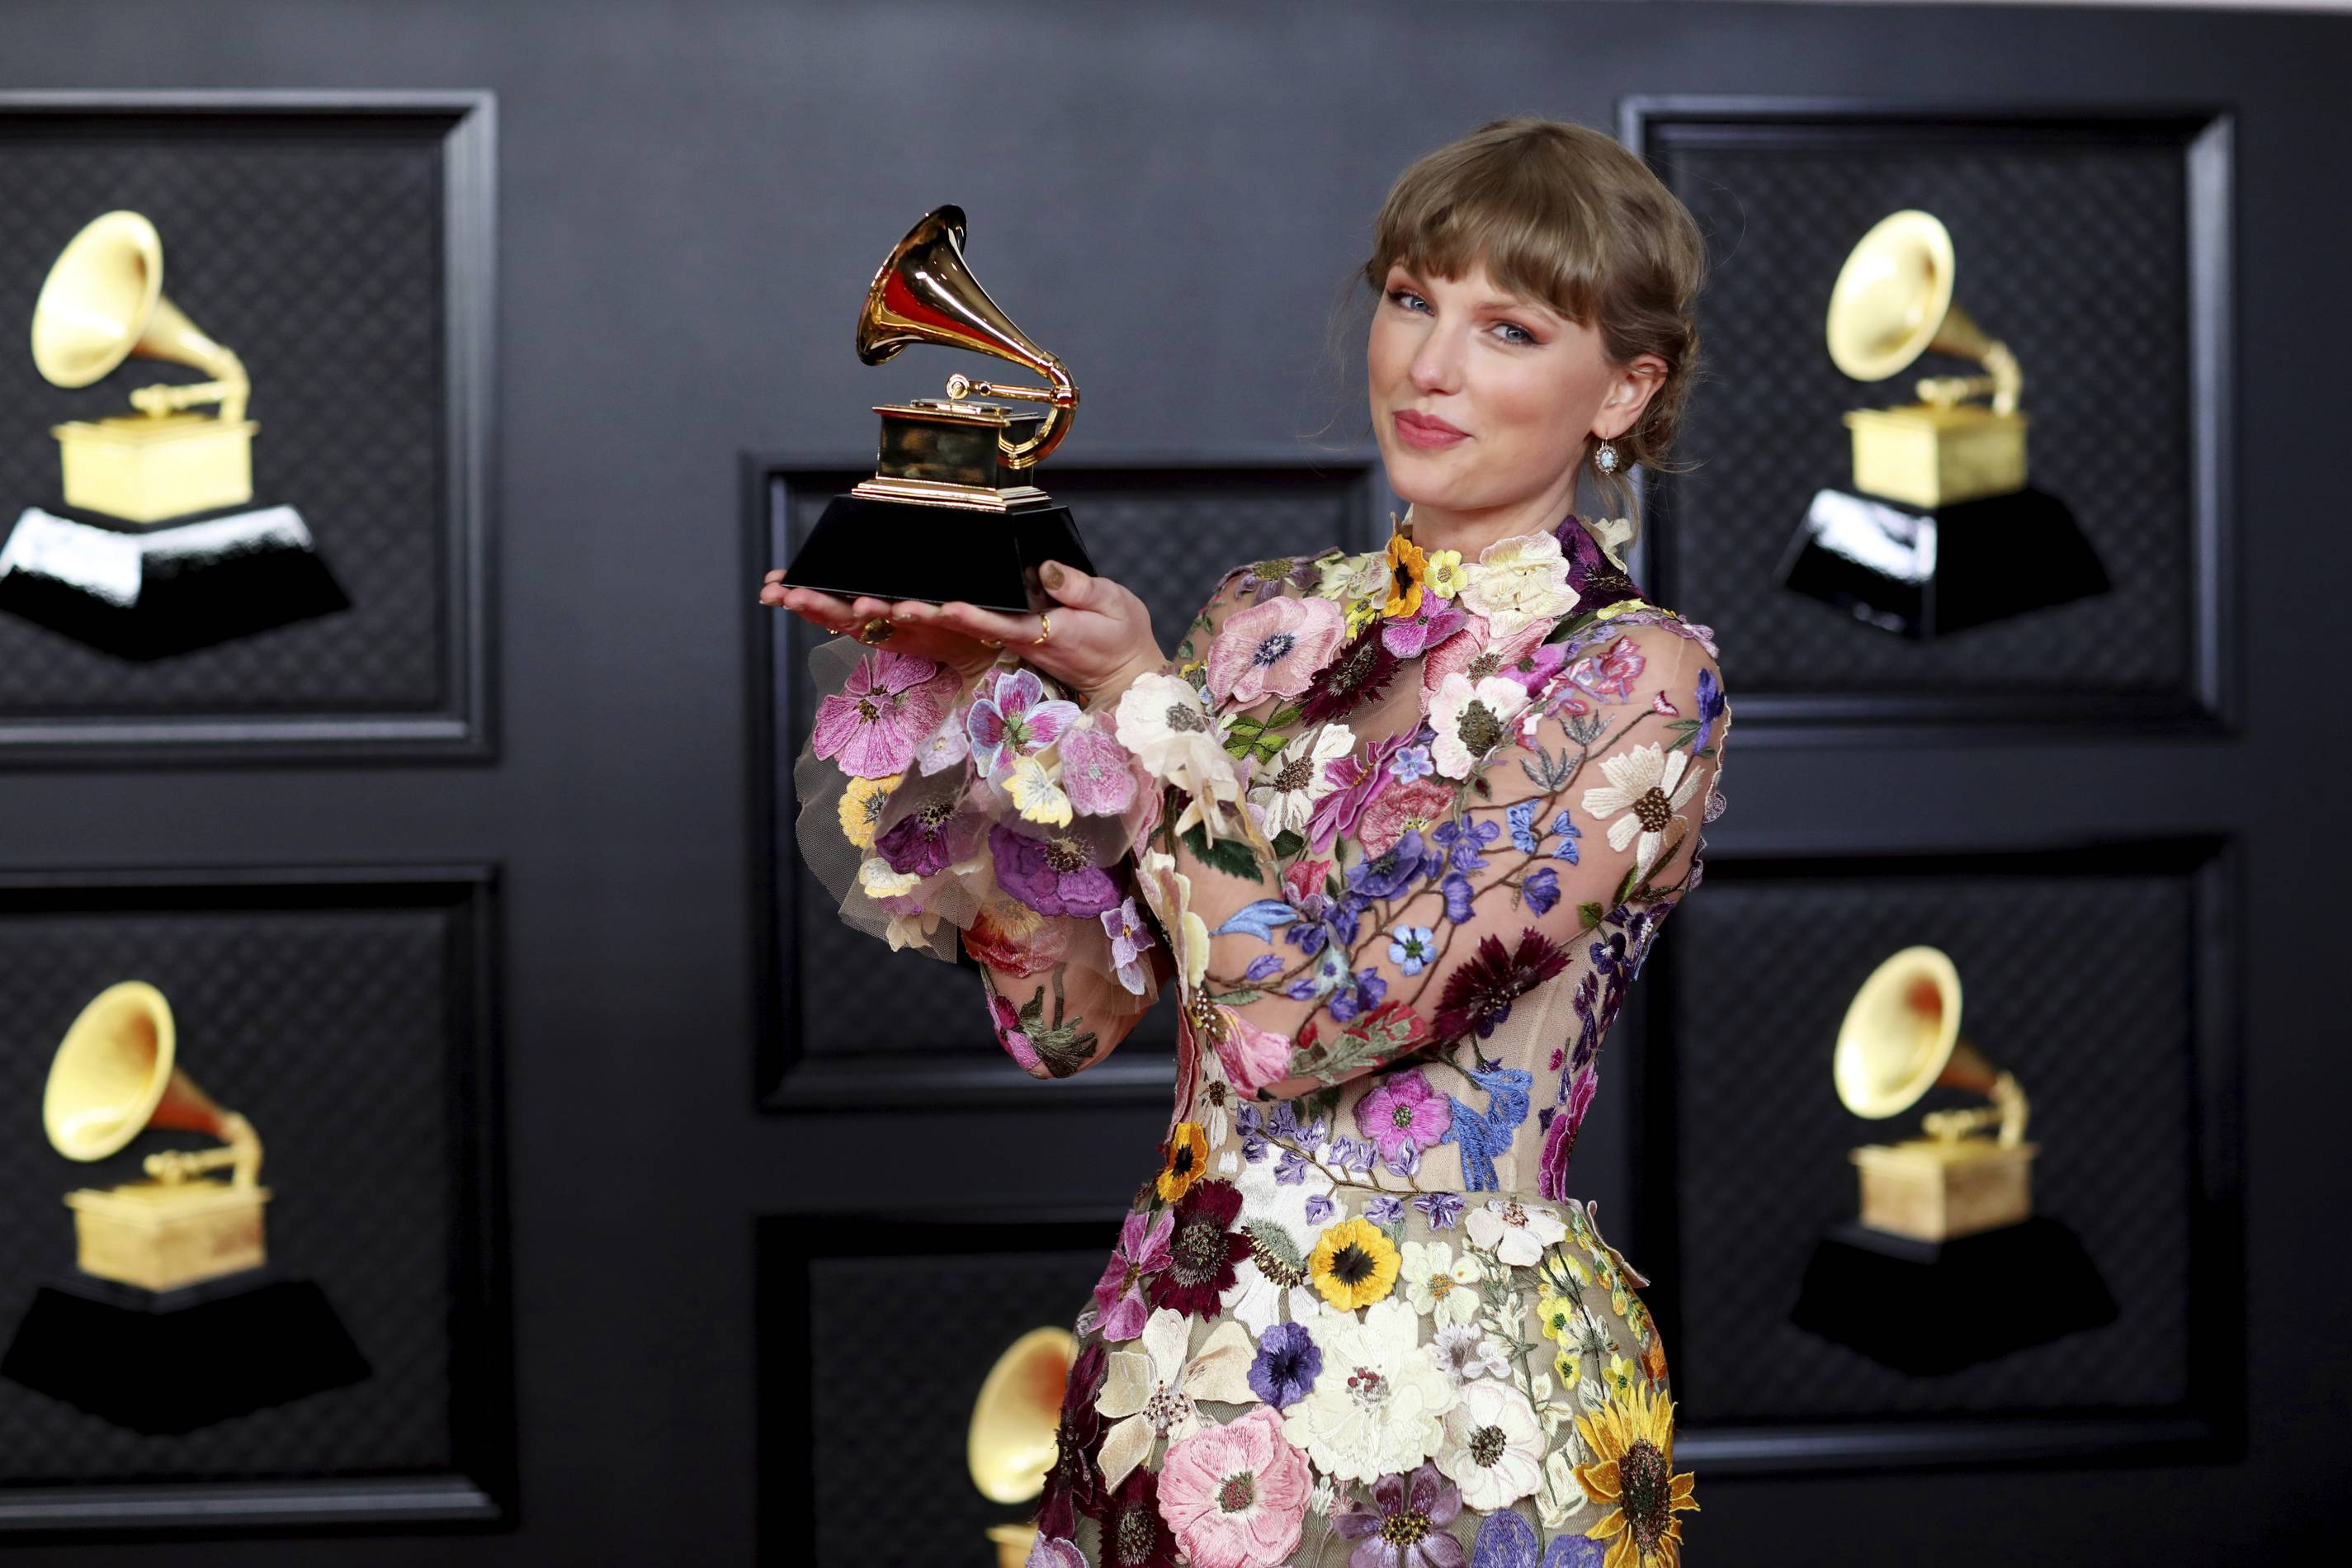 Taylor Swift wears Oscar de la Renta at the 2021 Grammys